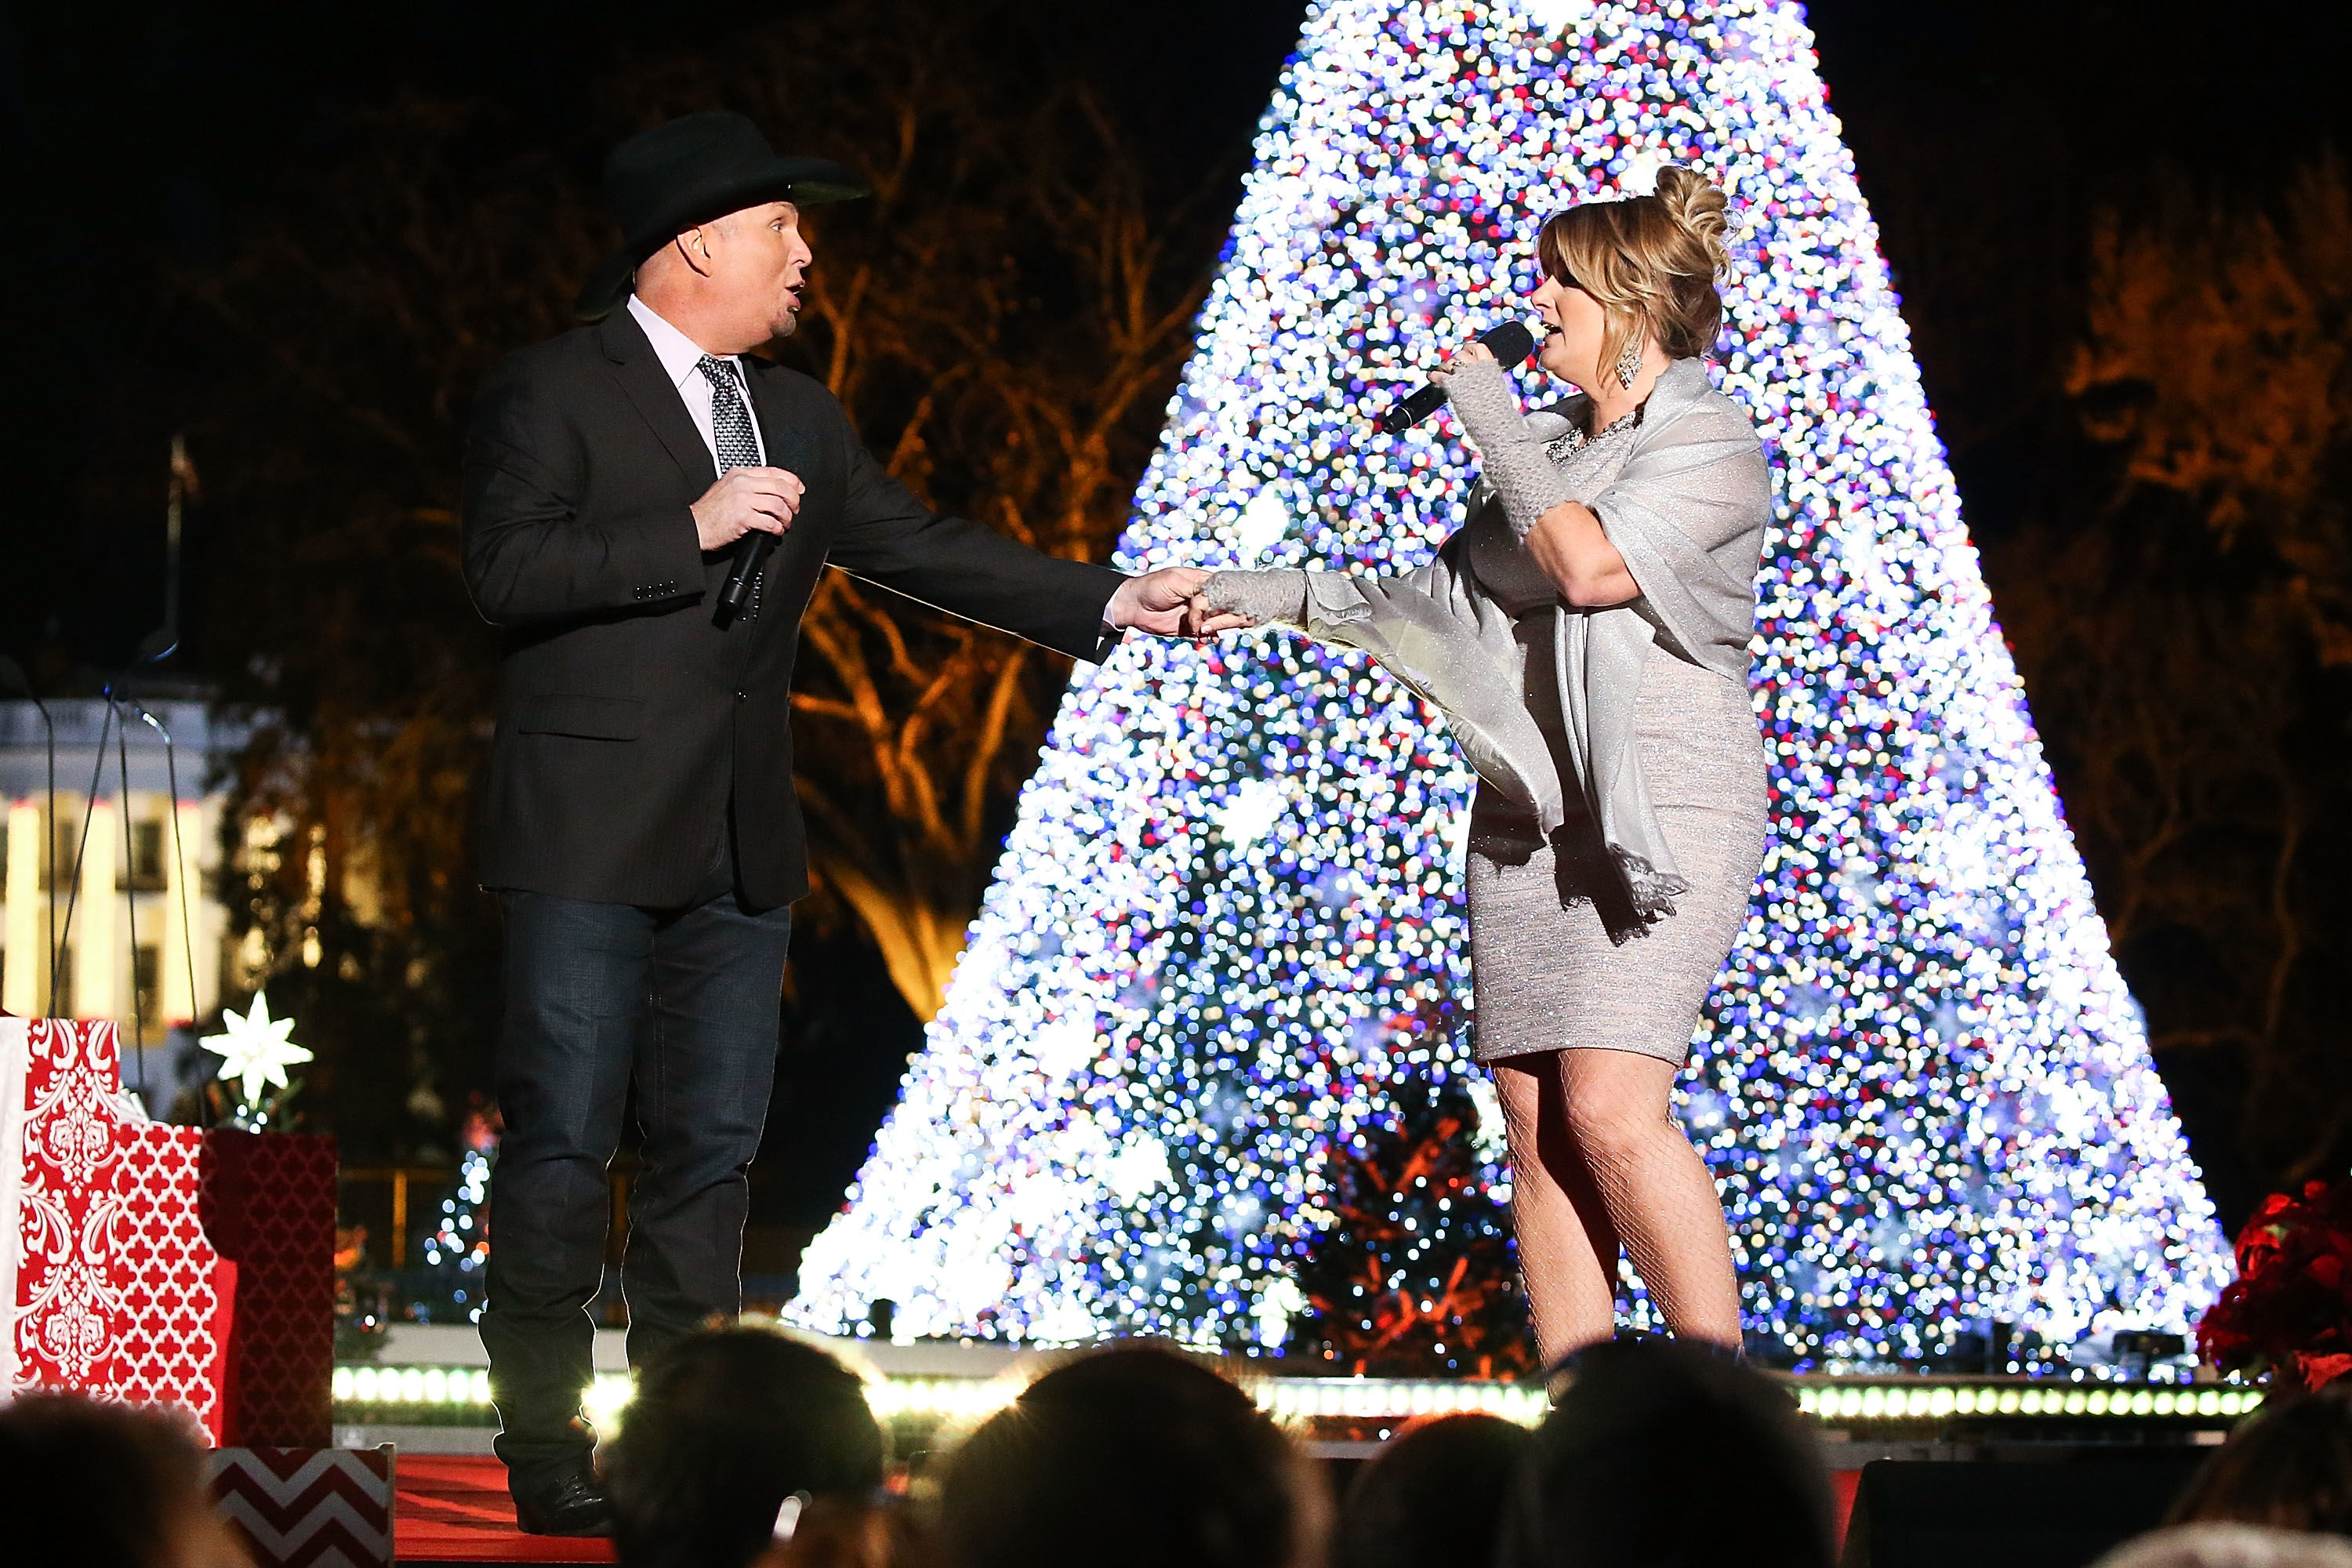 Garth Brooks and Trisha Yearwood Don't Let Their Busy Schedules Get In The Way of a Beloved Christmas Family Tradition